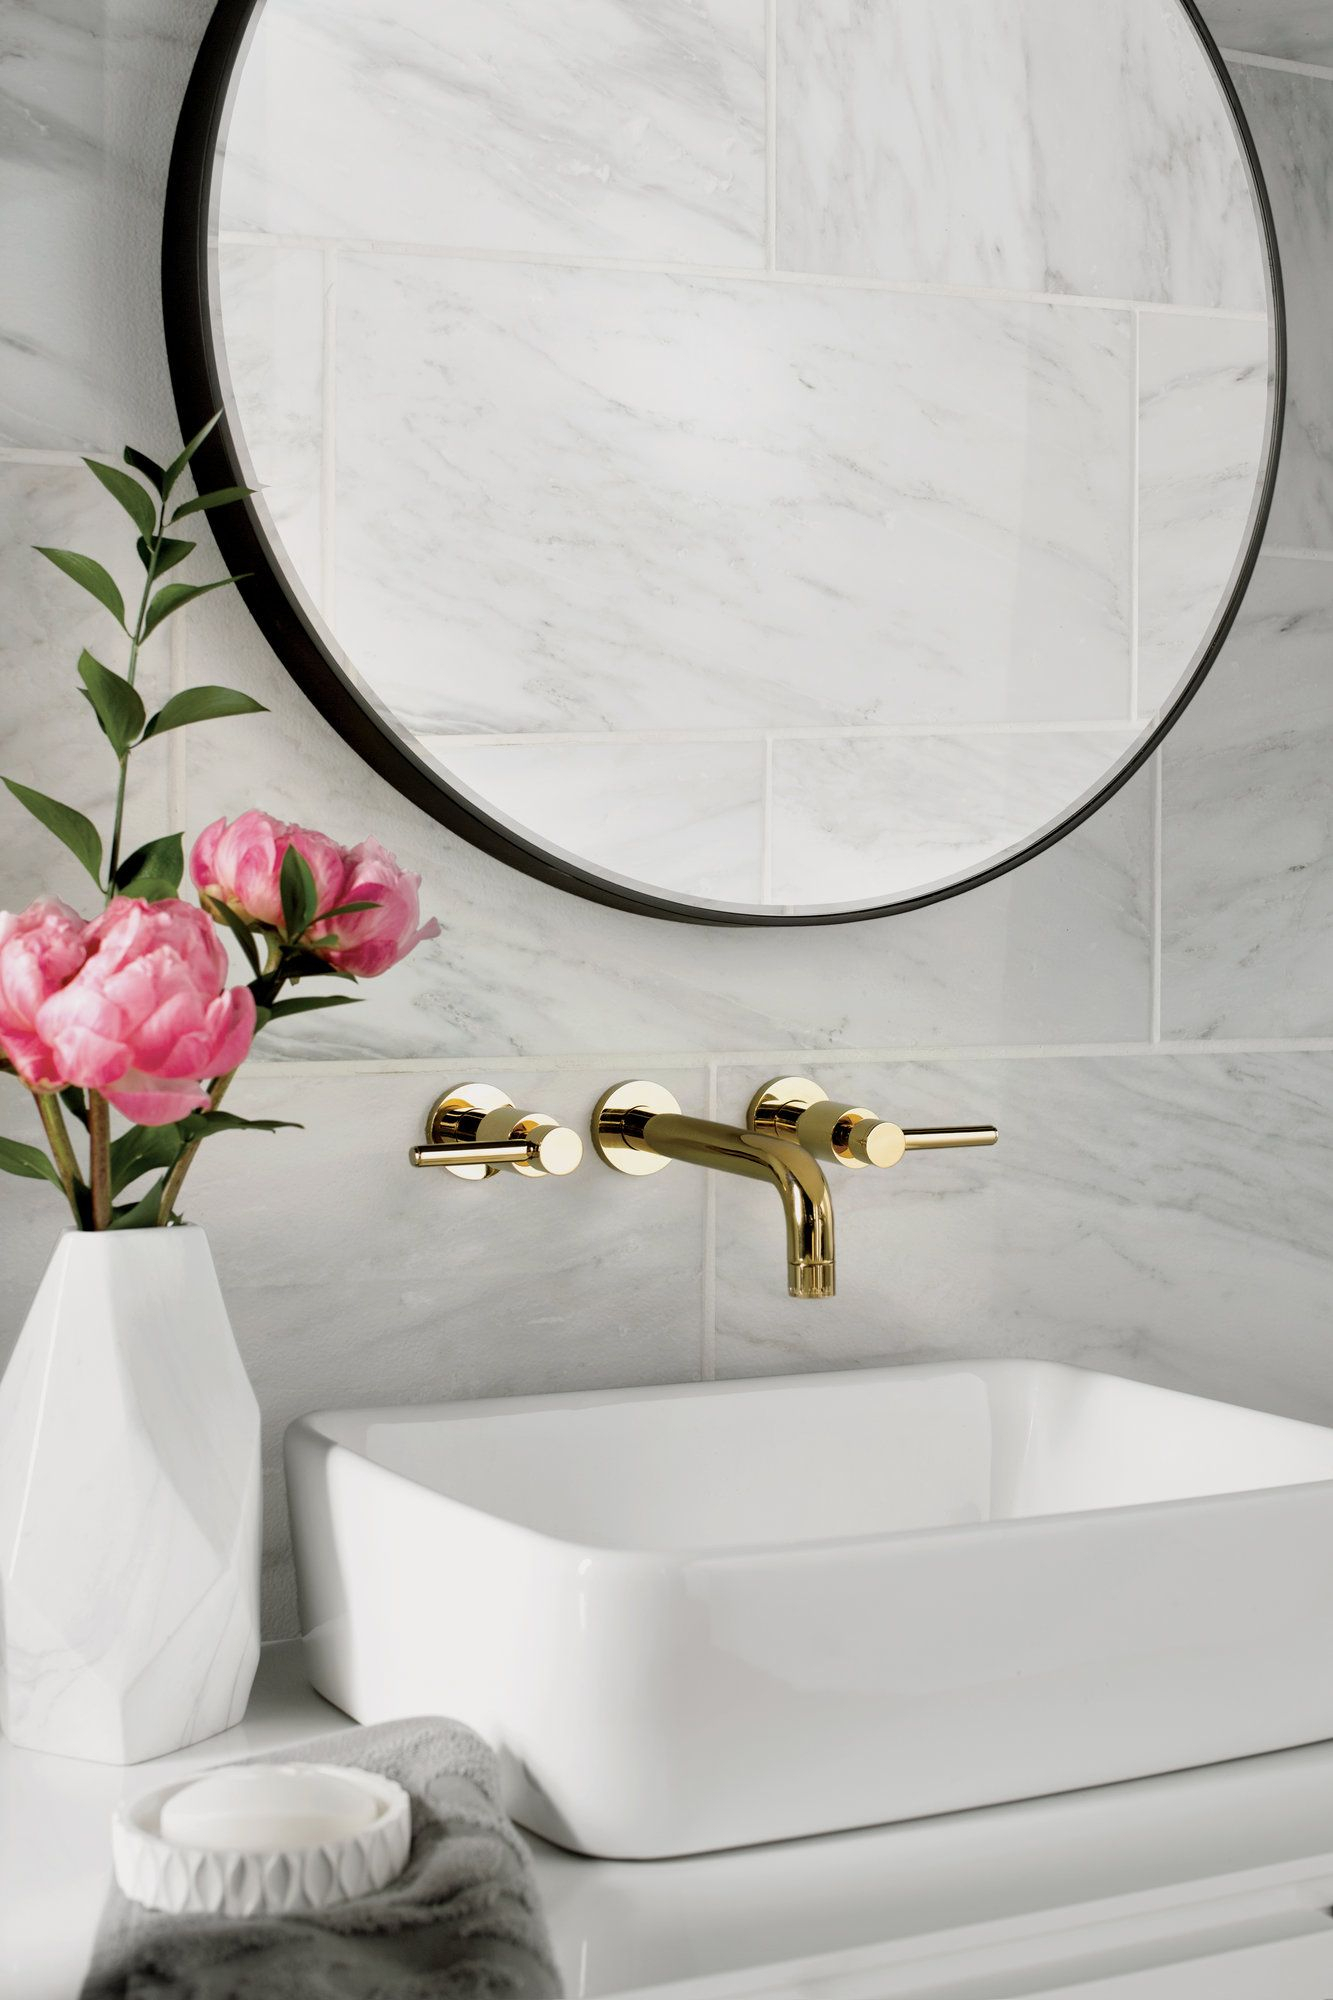 Hub Modern And Contemporary Accent Mirror In 2019 With Hub Modern And Contemporary Accent Mirrors (View 4 of 30)